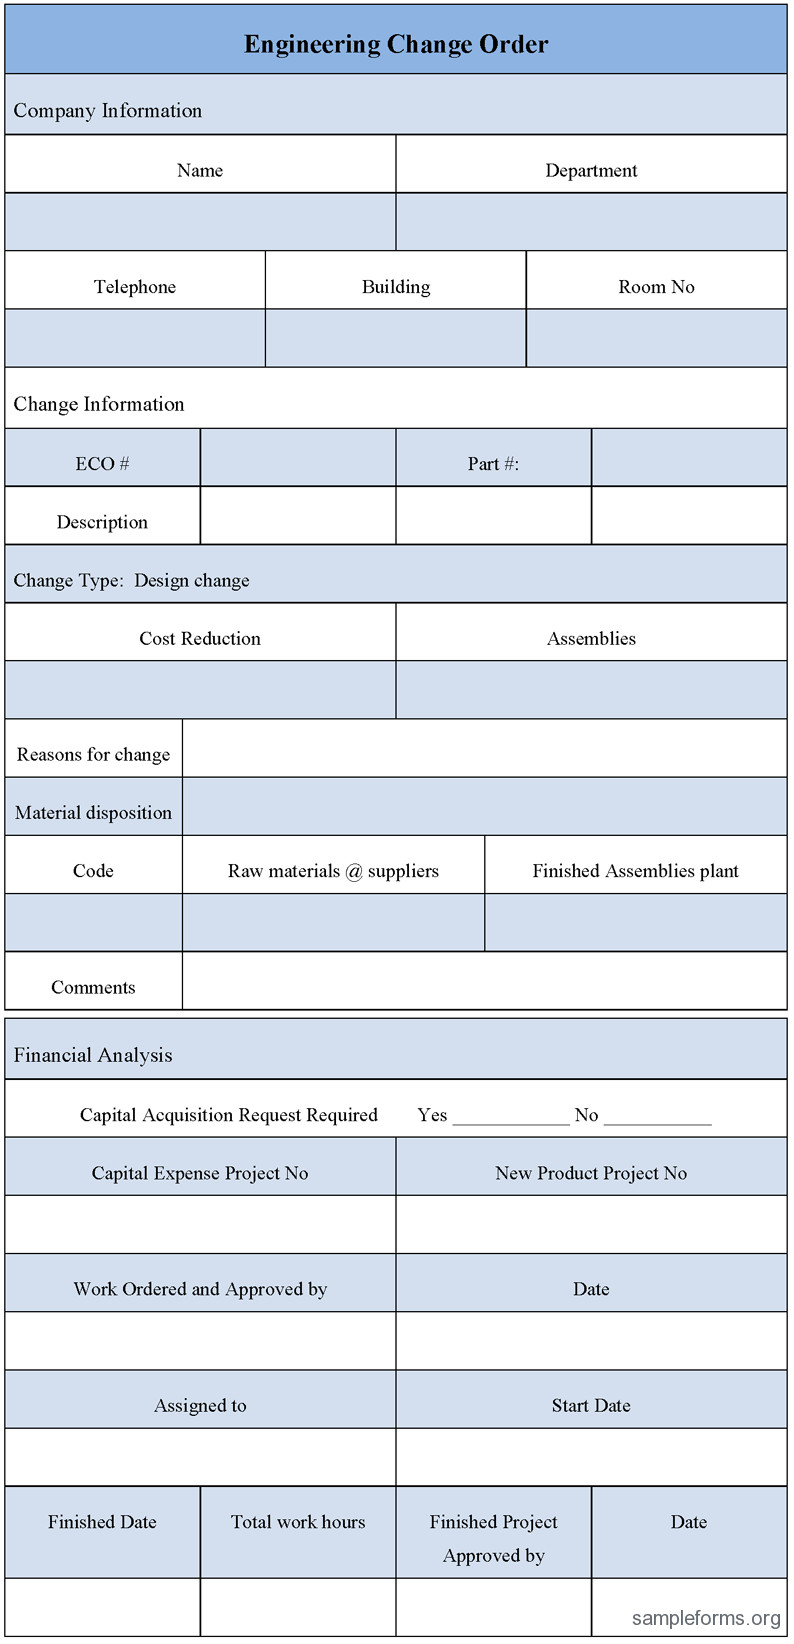 Engineering Change order Template Engineering Change order form Sample forms